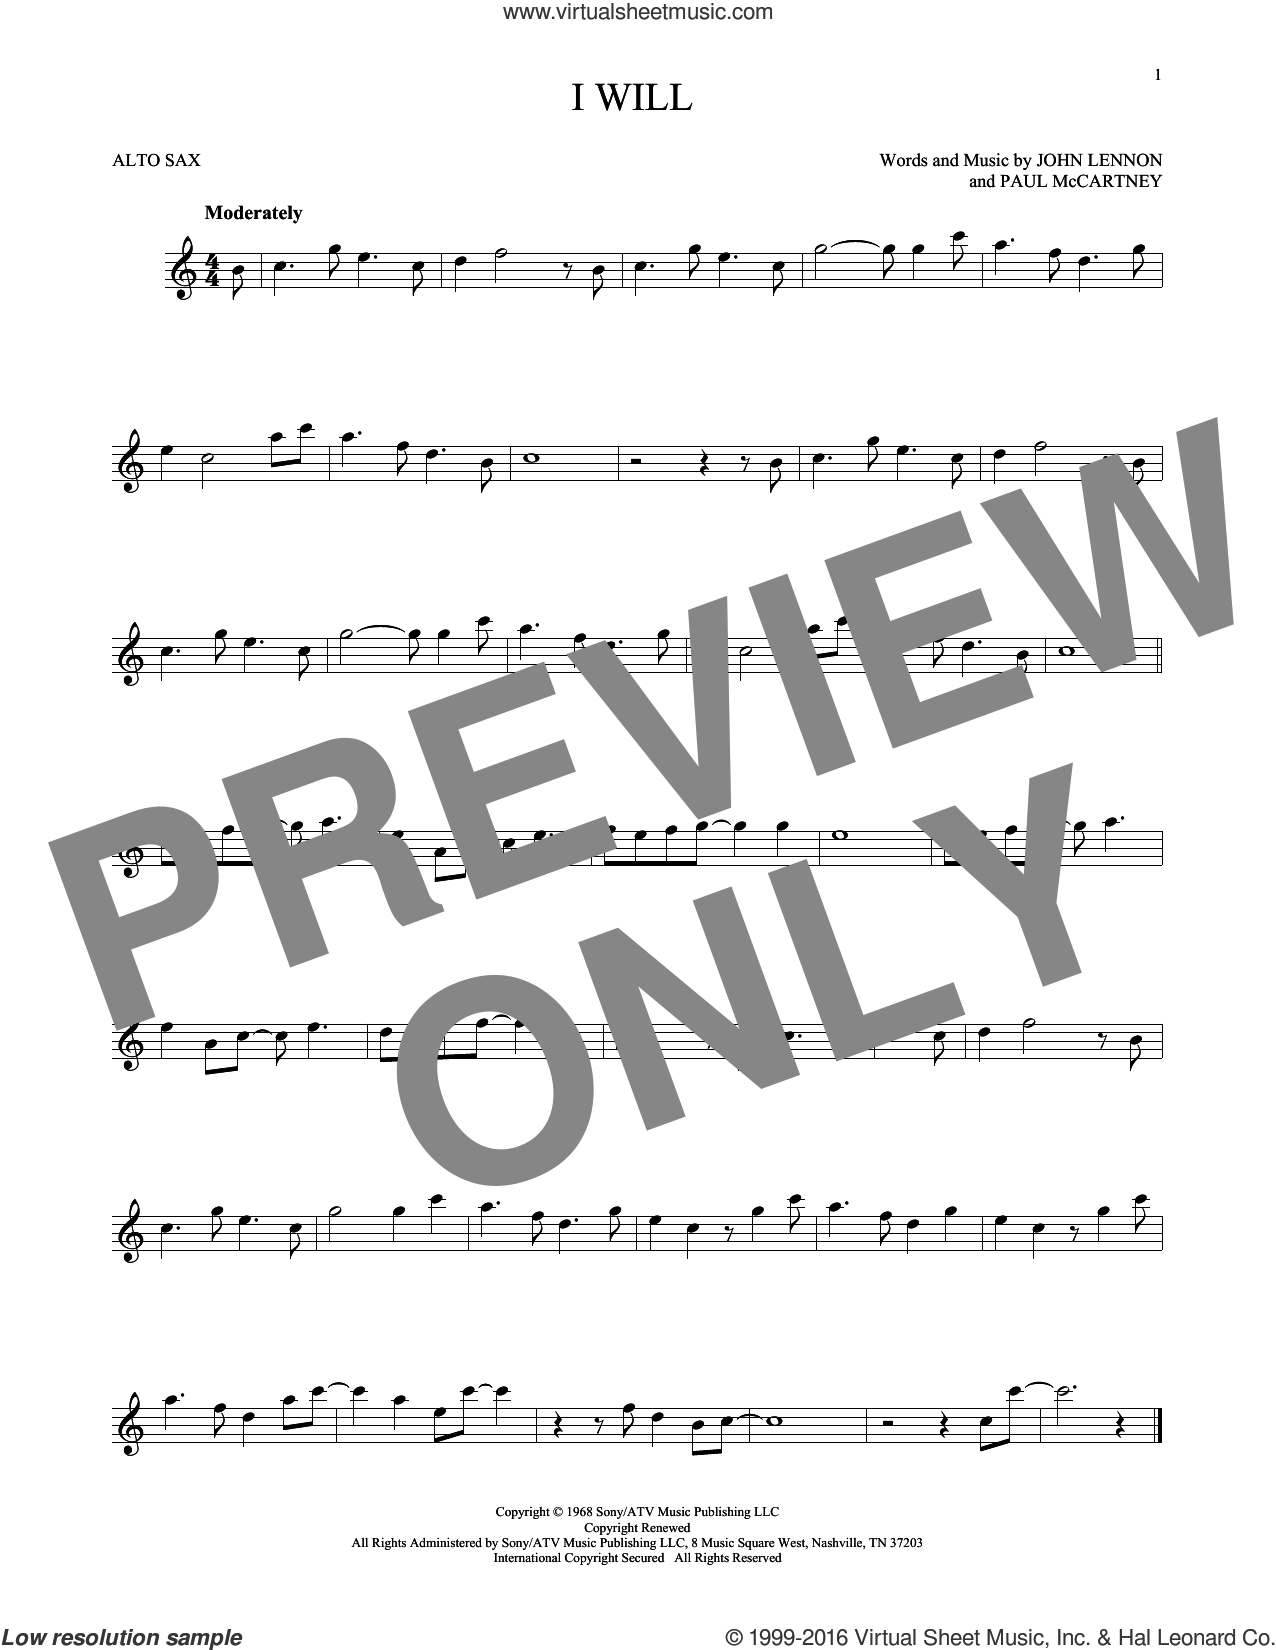 I Will sheet music for alto saxophone solo by The Beatles, John Lennon and Paul McCartney, intermediate skill level